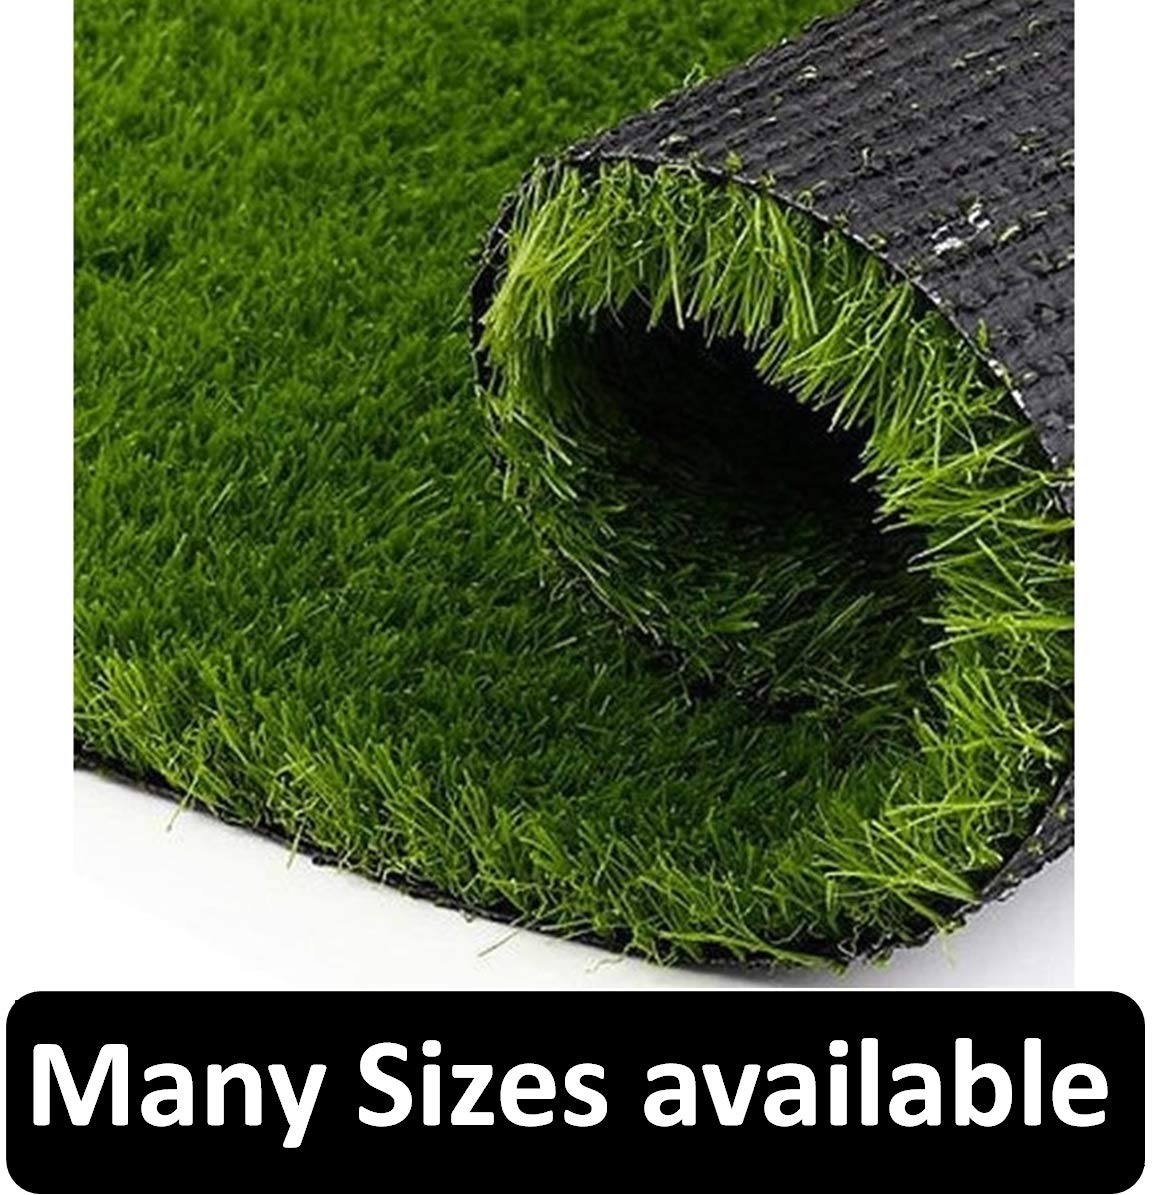 Yellow Weaves™ High Density Artificial Grass Carpet Mat for Balcony, Lawn, Door (6.5 X 3 Feet) product image